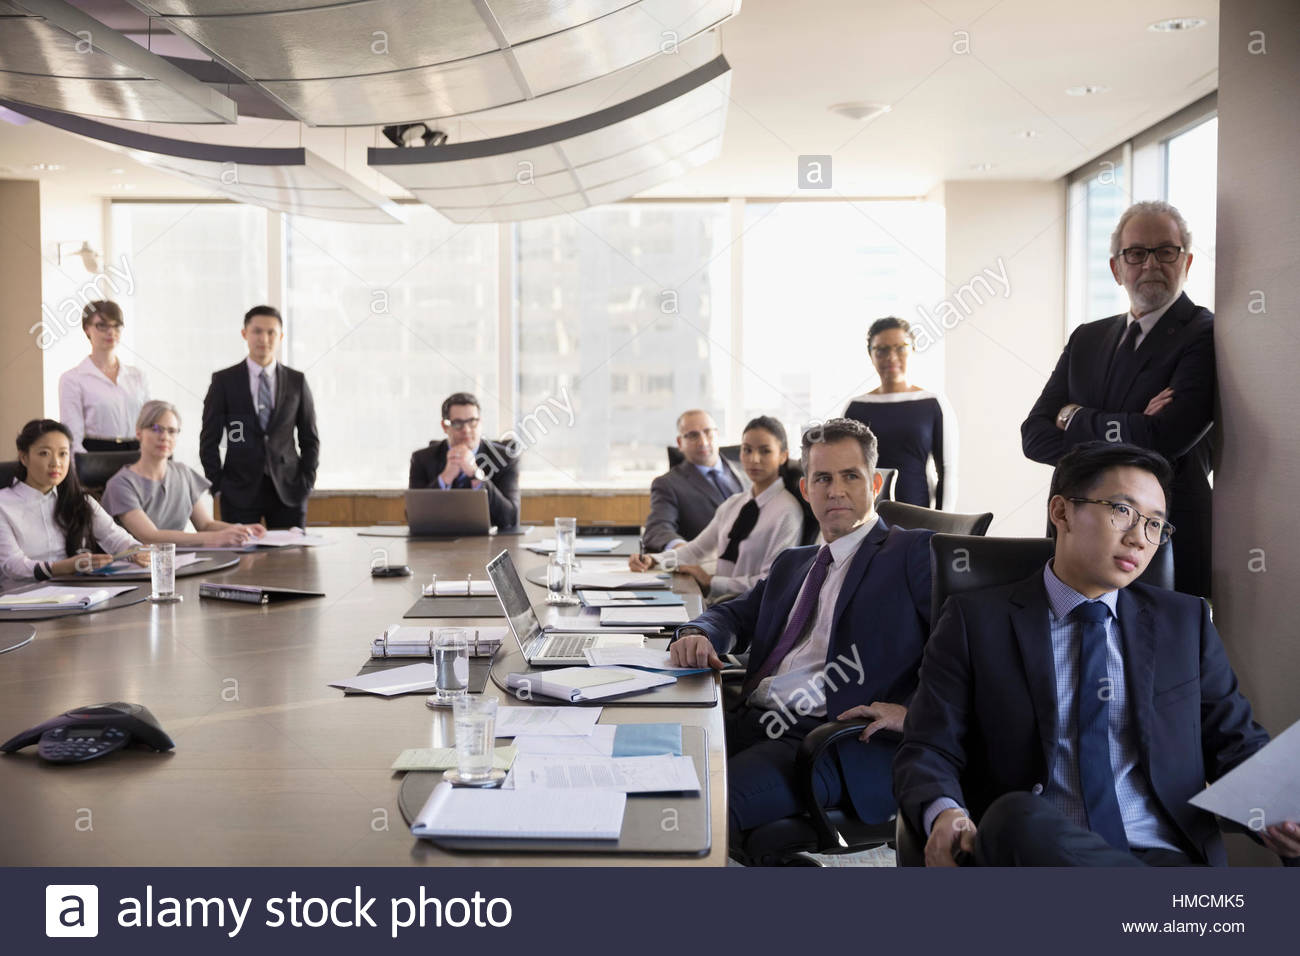 Attentive lawyers listening in conference room meeting ...